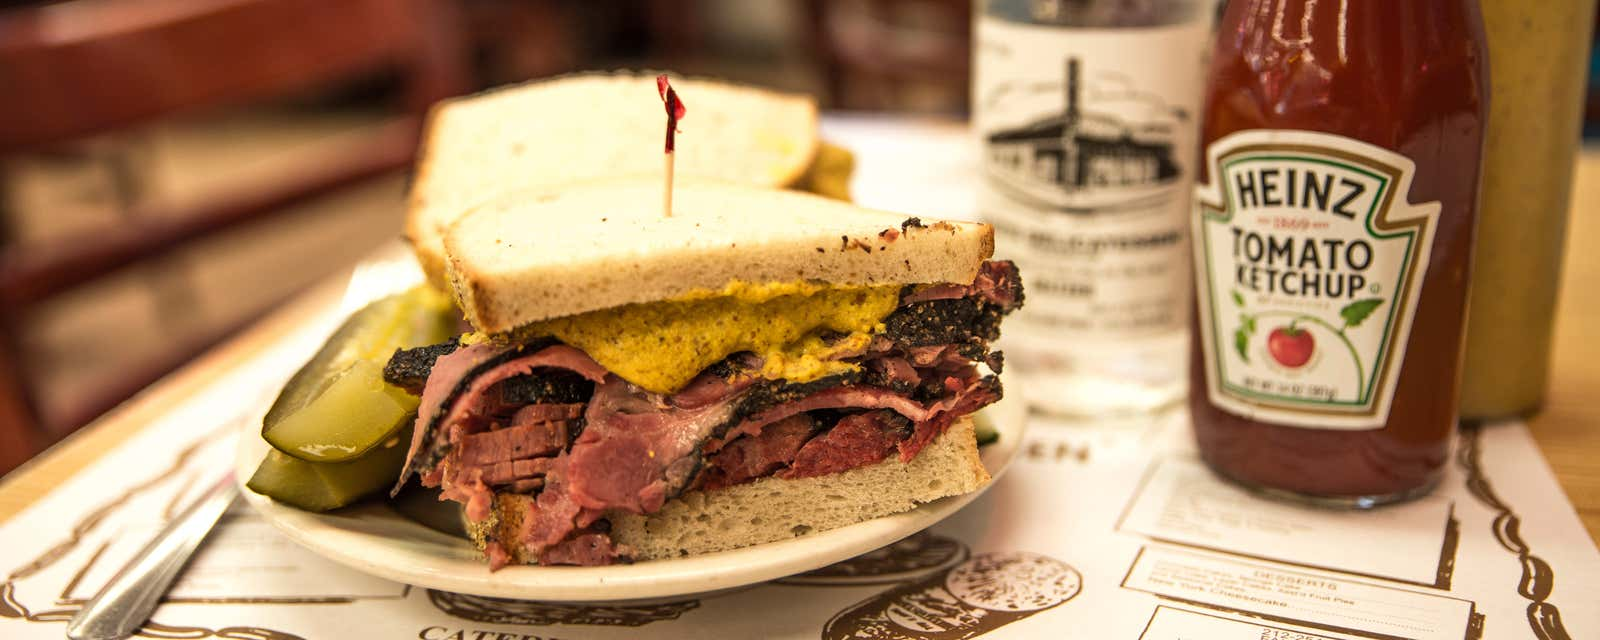 A pastrami on rye sandwich, Katz's Deli, New York City.